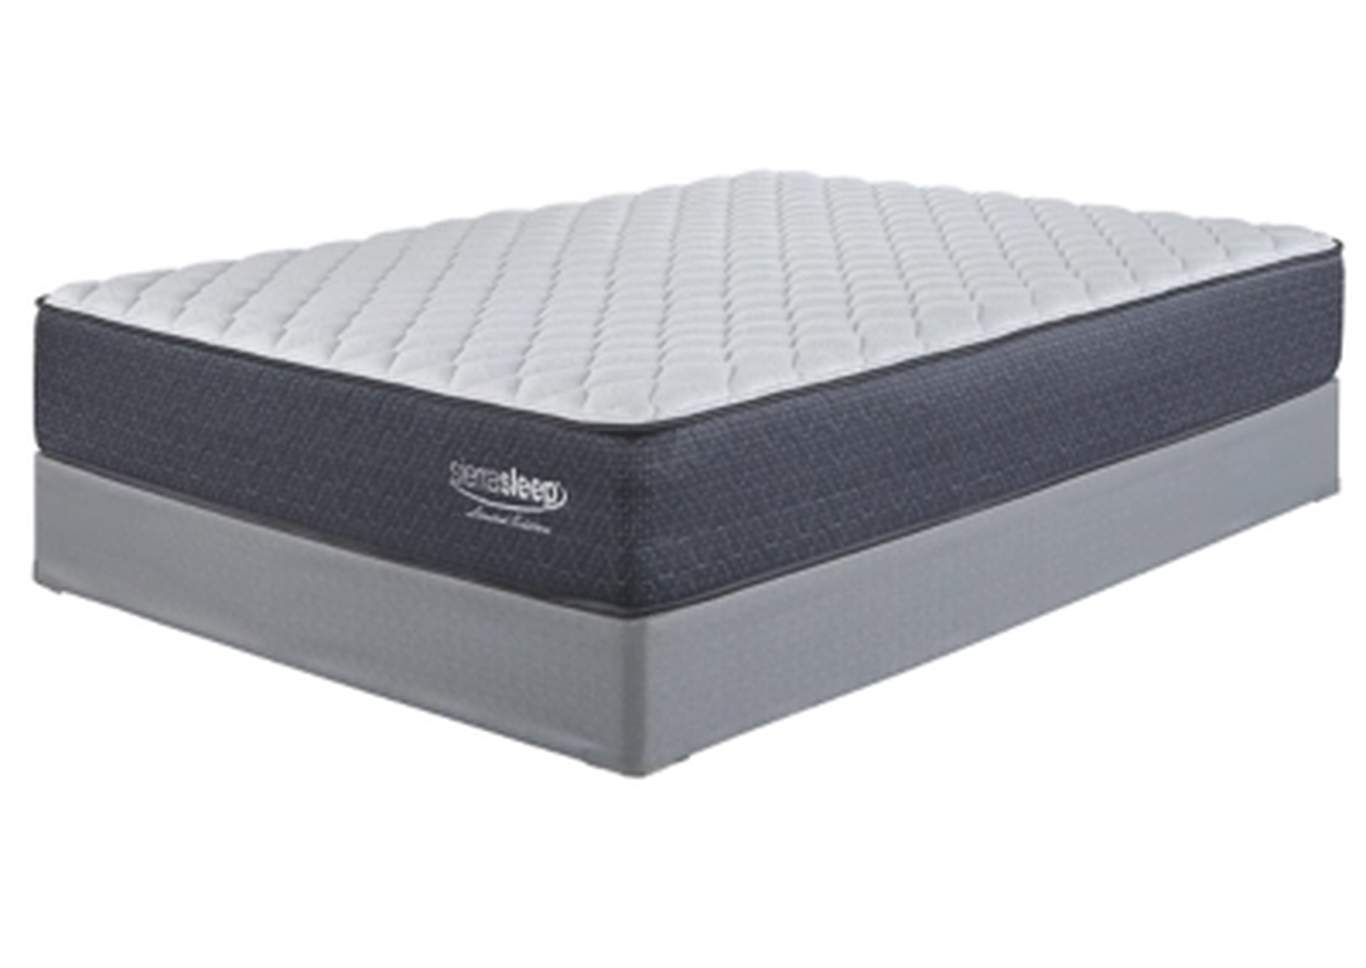 Limited Edition Firm White Twin Mattress w/Foundation,Sierra Sleep by Ashley